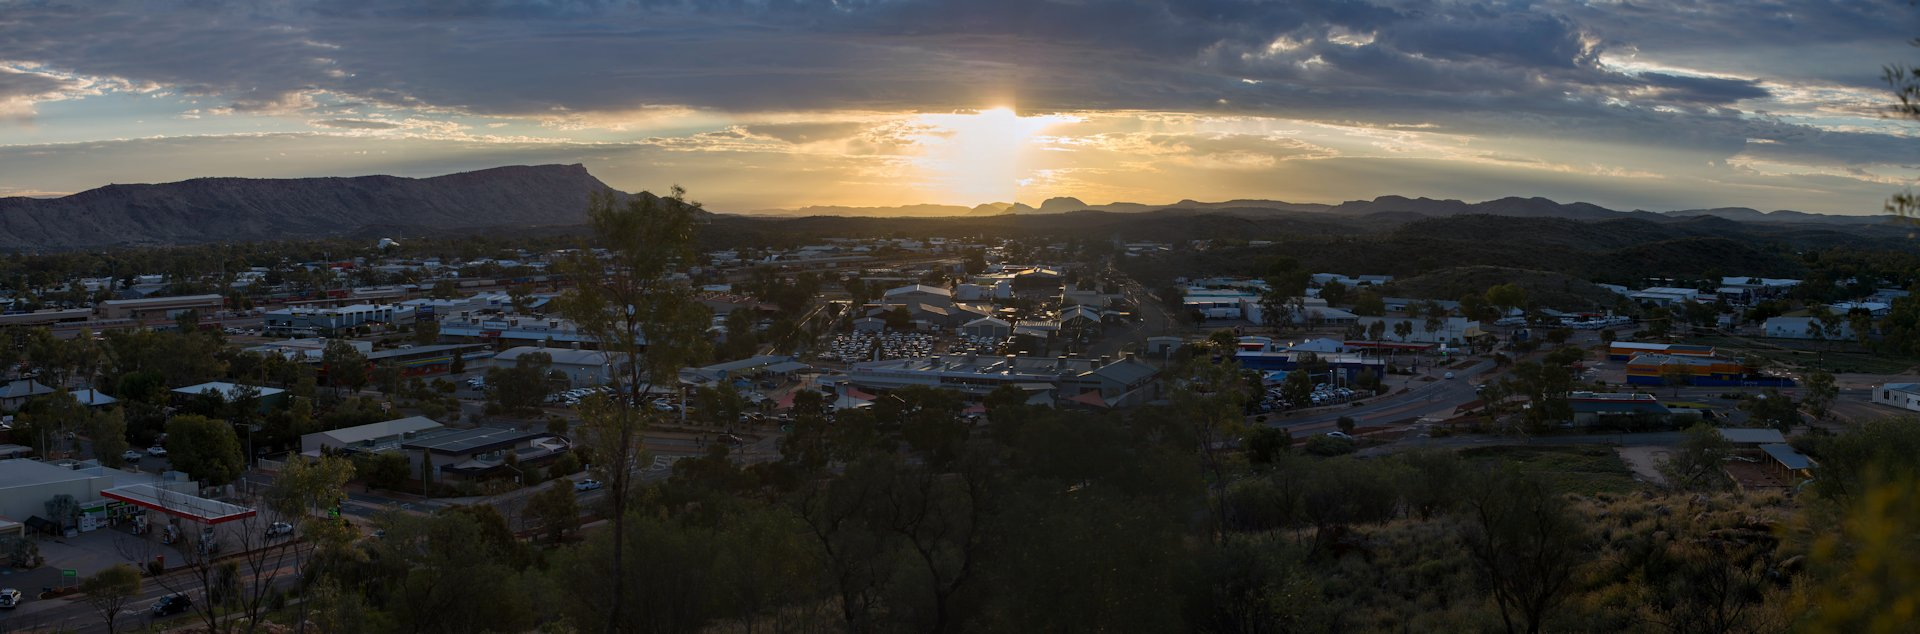 Sunset over Alice Springs and the MacDonnell Ranges